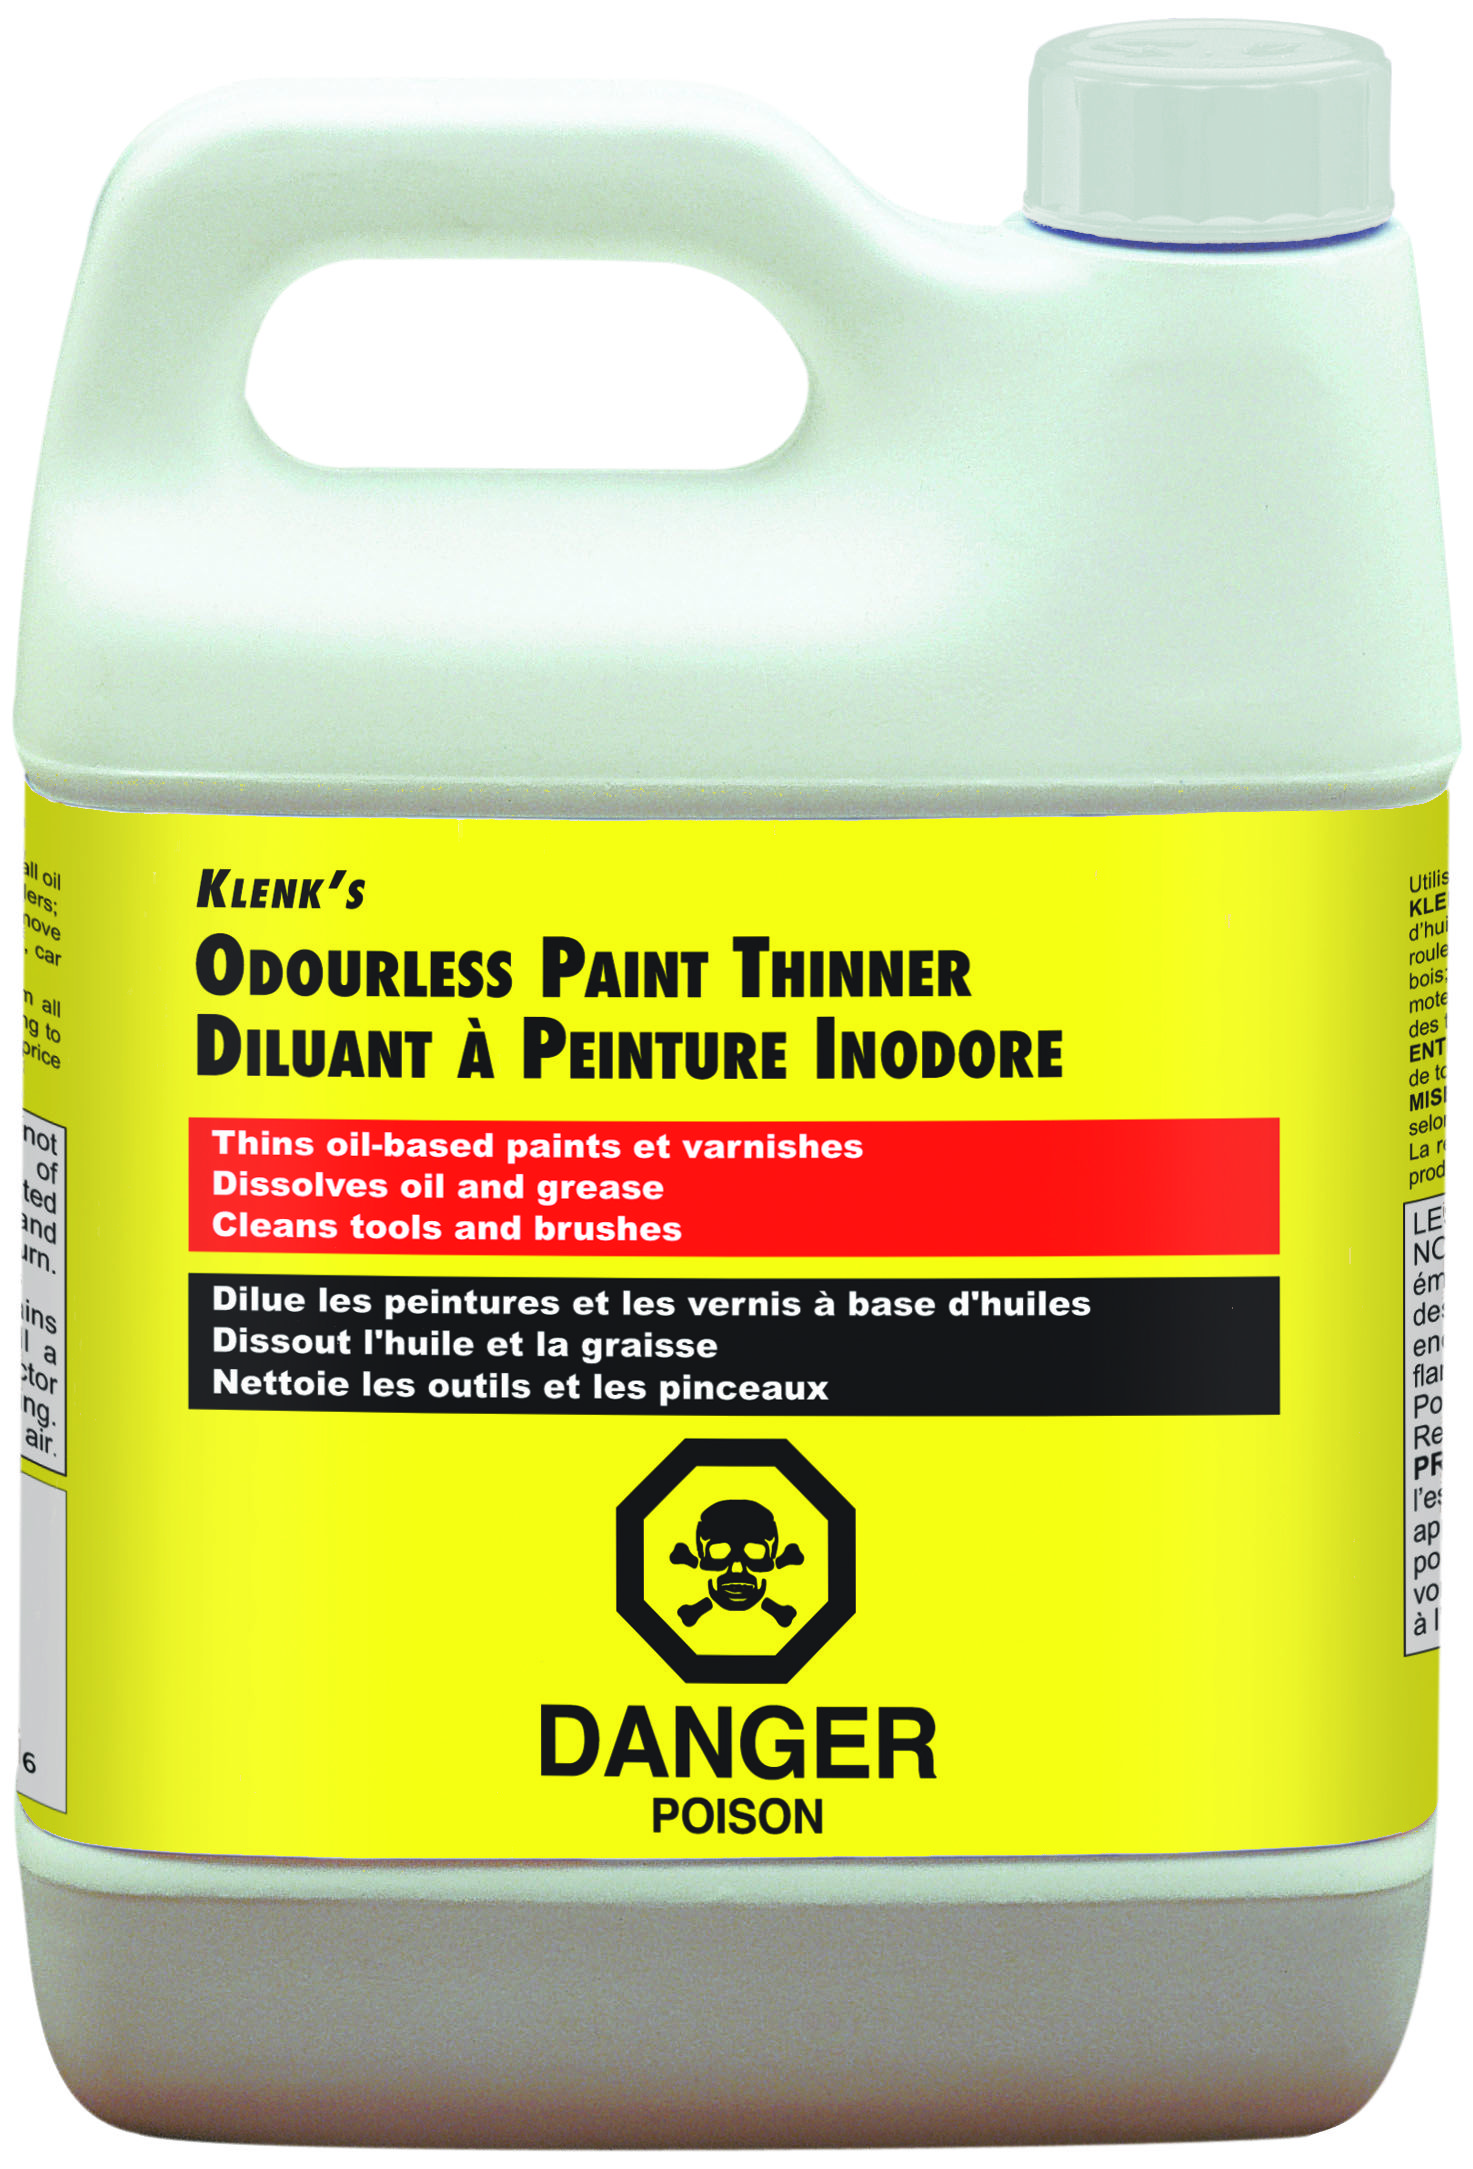 Klenk S Odourless Thinner Thins Oil Based Paints And Varnishes It Dissolves Oil And Grease And Cleans Tools And B Paint Thinner Staining Wood Varnish Remover